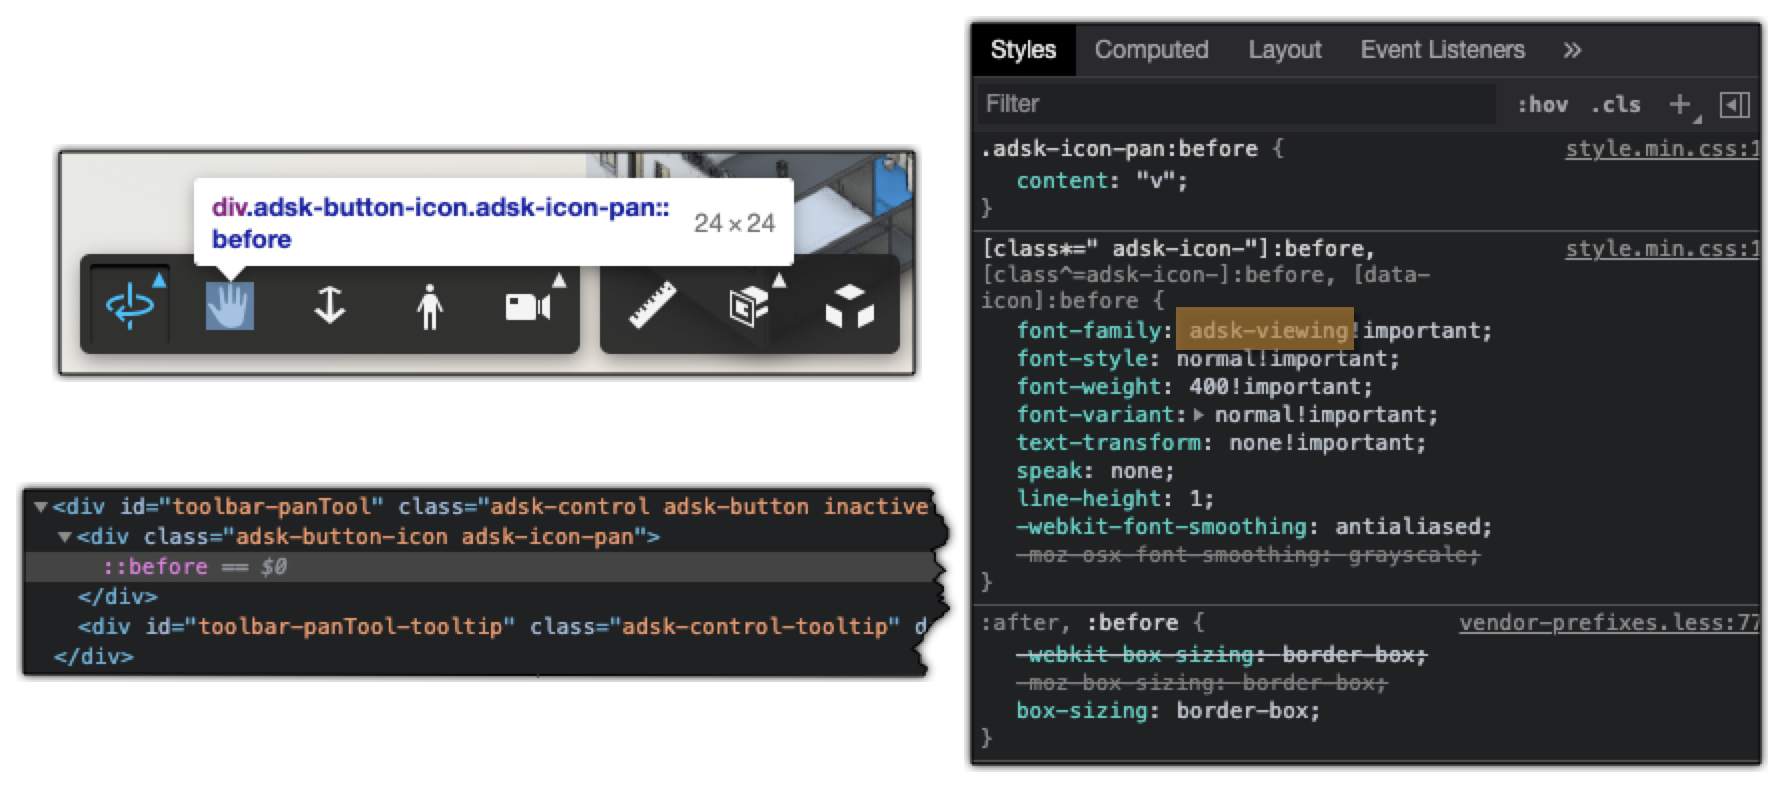 adsk-viewing CSS class